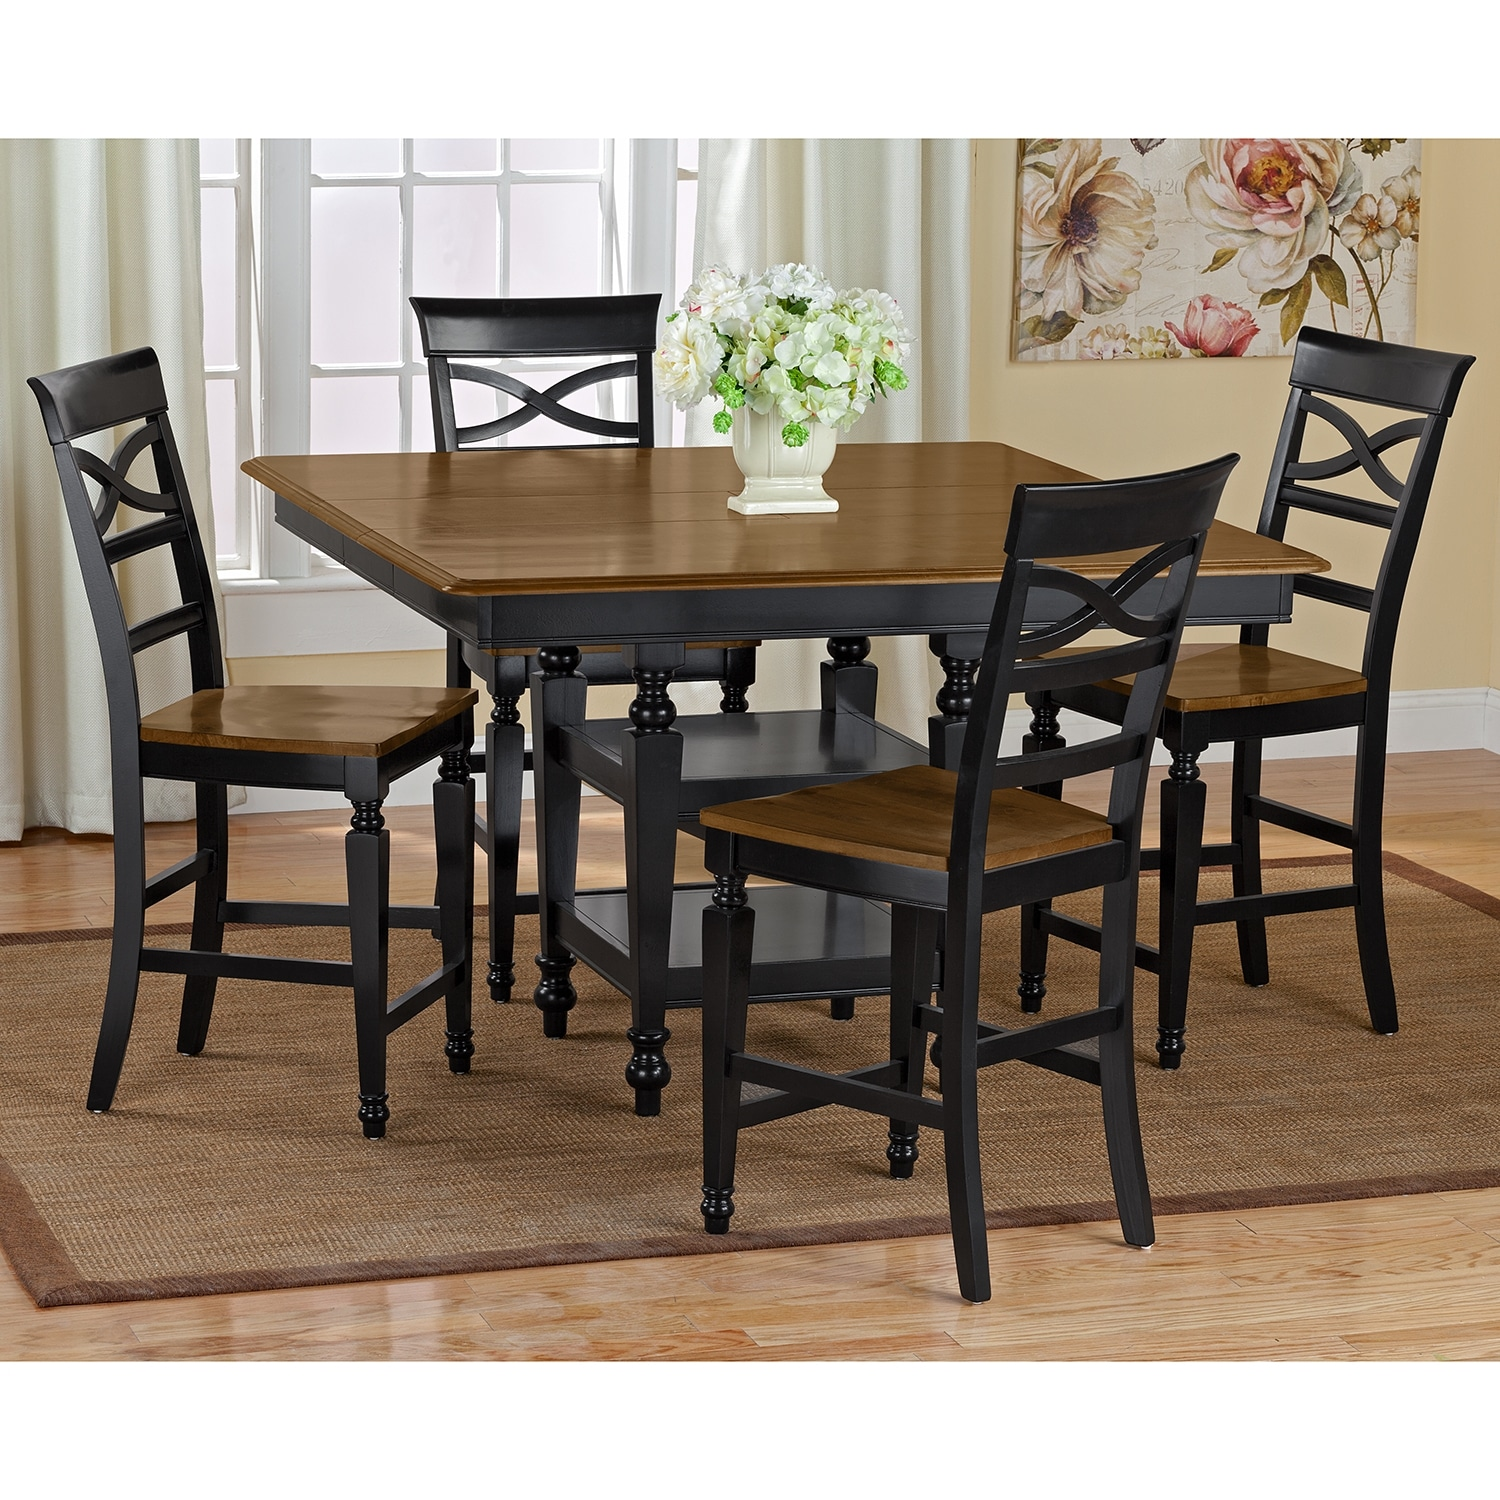 Dining Table Value City Dining Tables